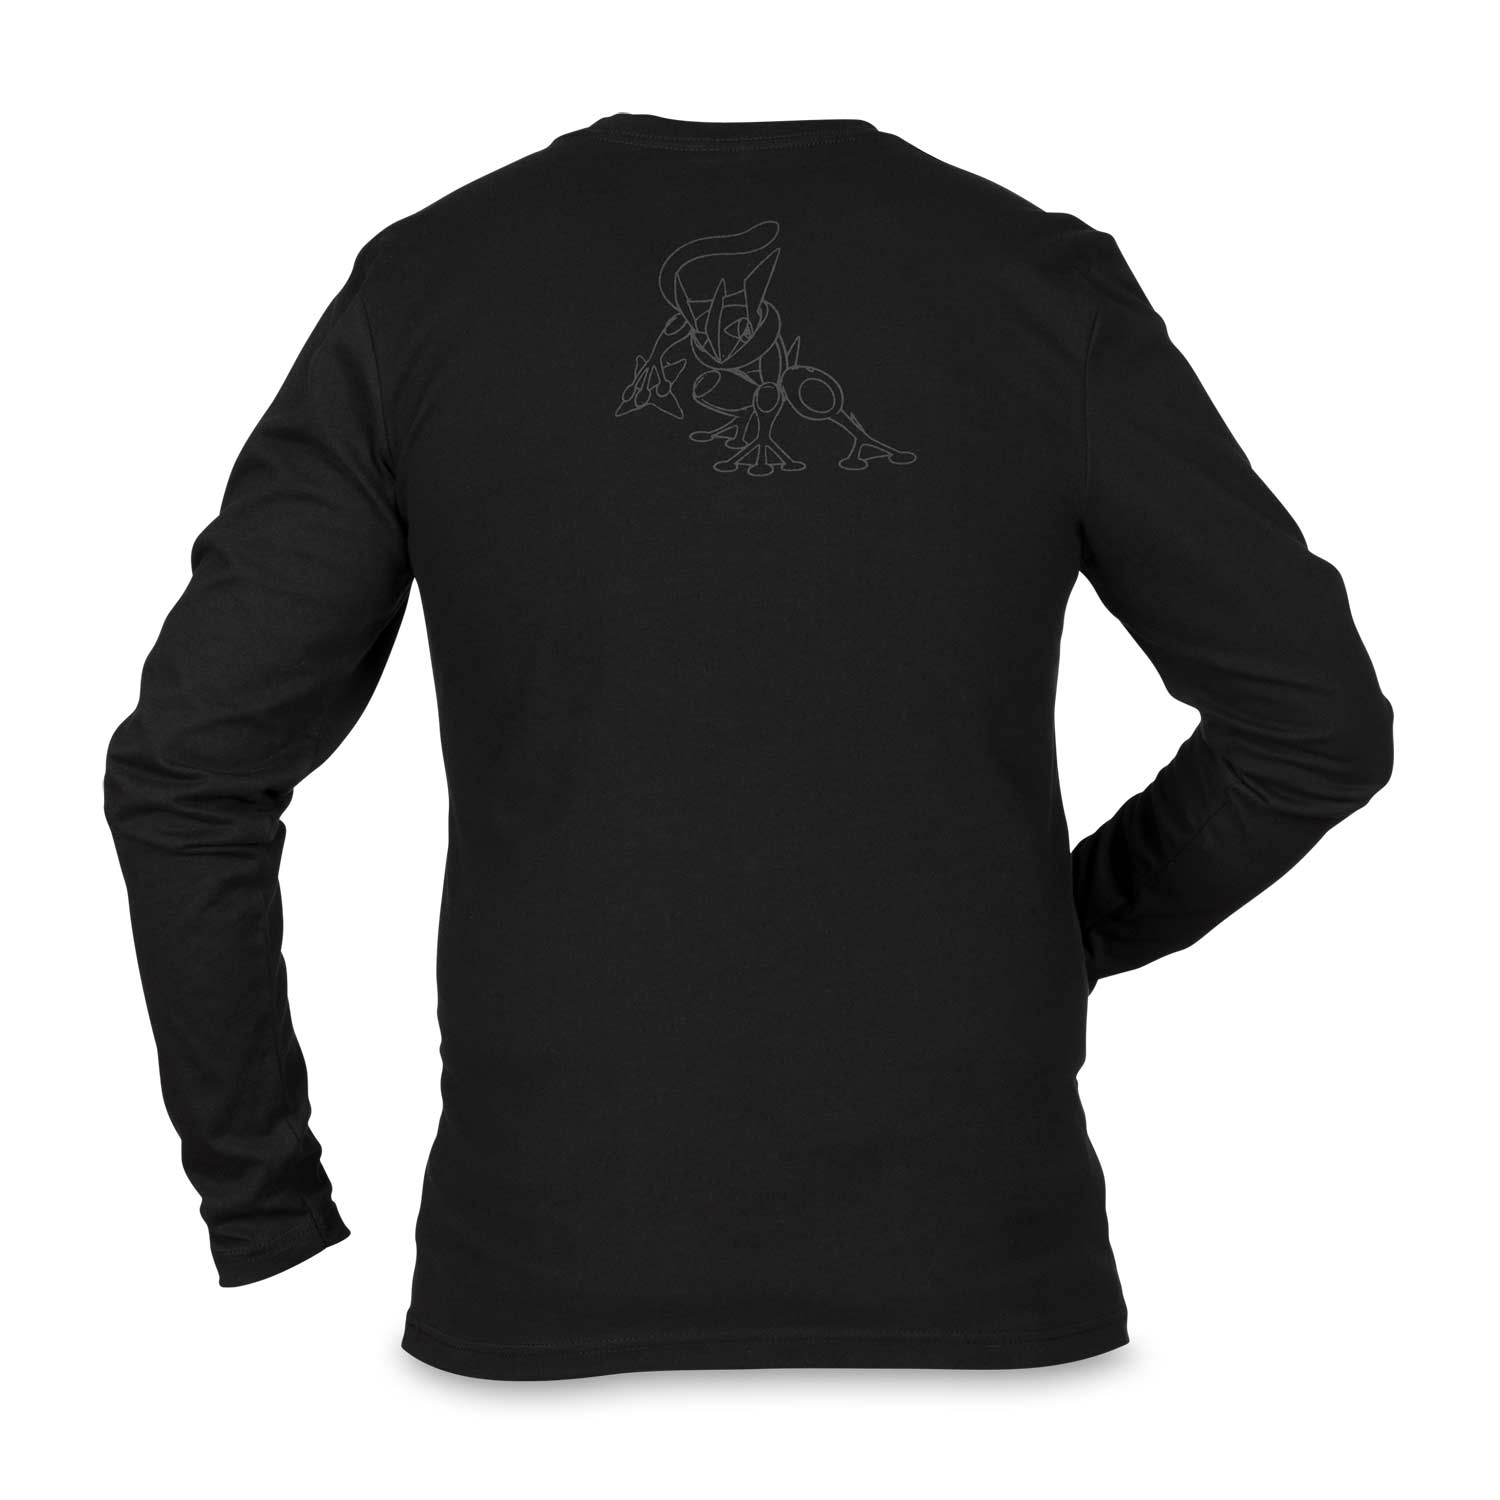 13983db98ea749 Image for Greninja Stealth Fitted Long-Sleeve Crew Neck T-Shirt - Adult from